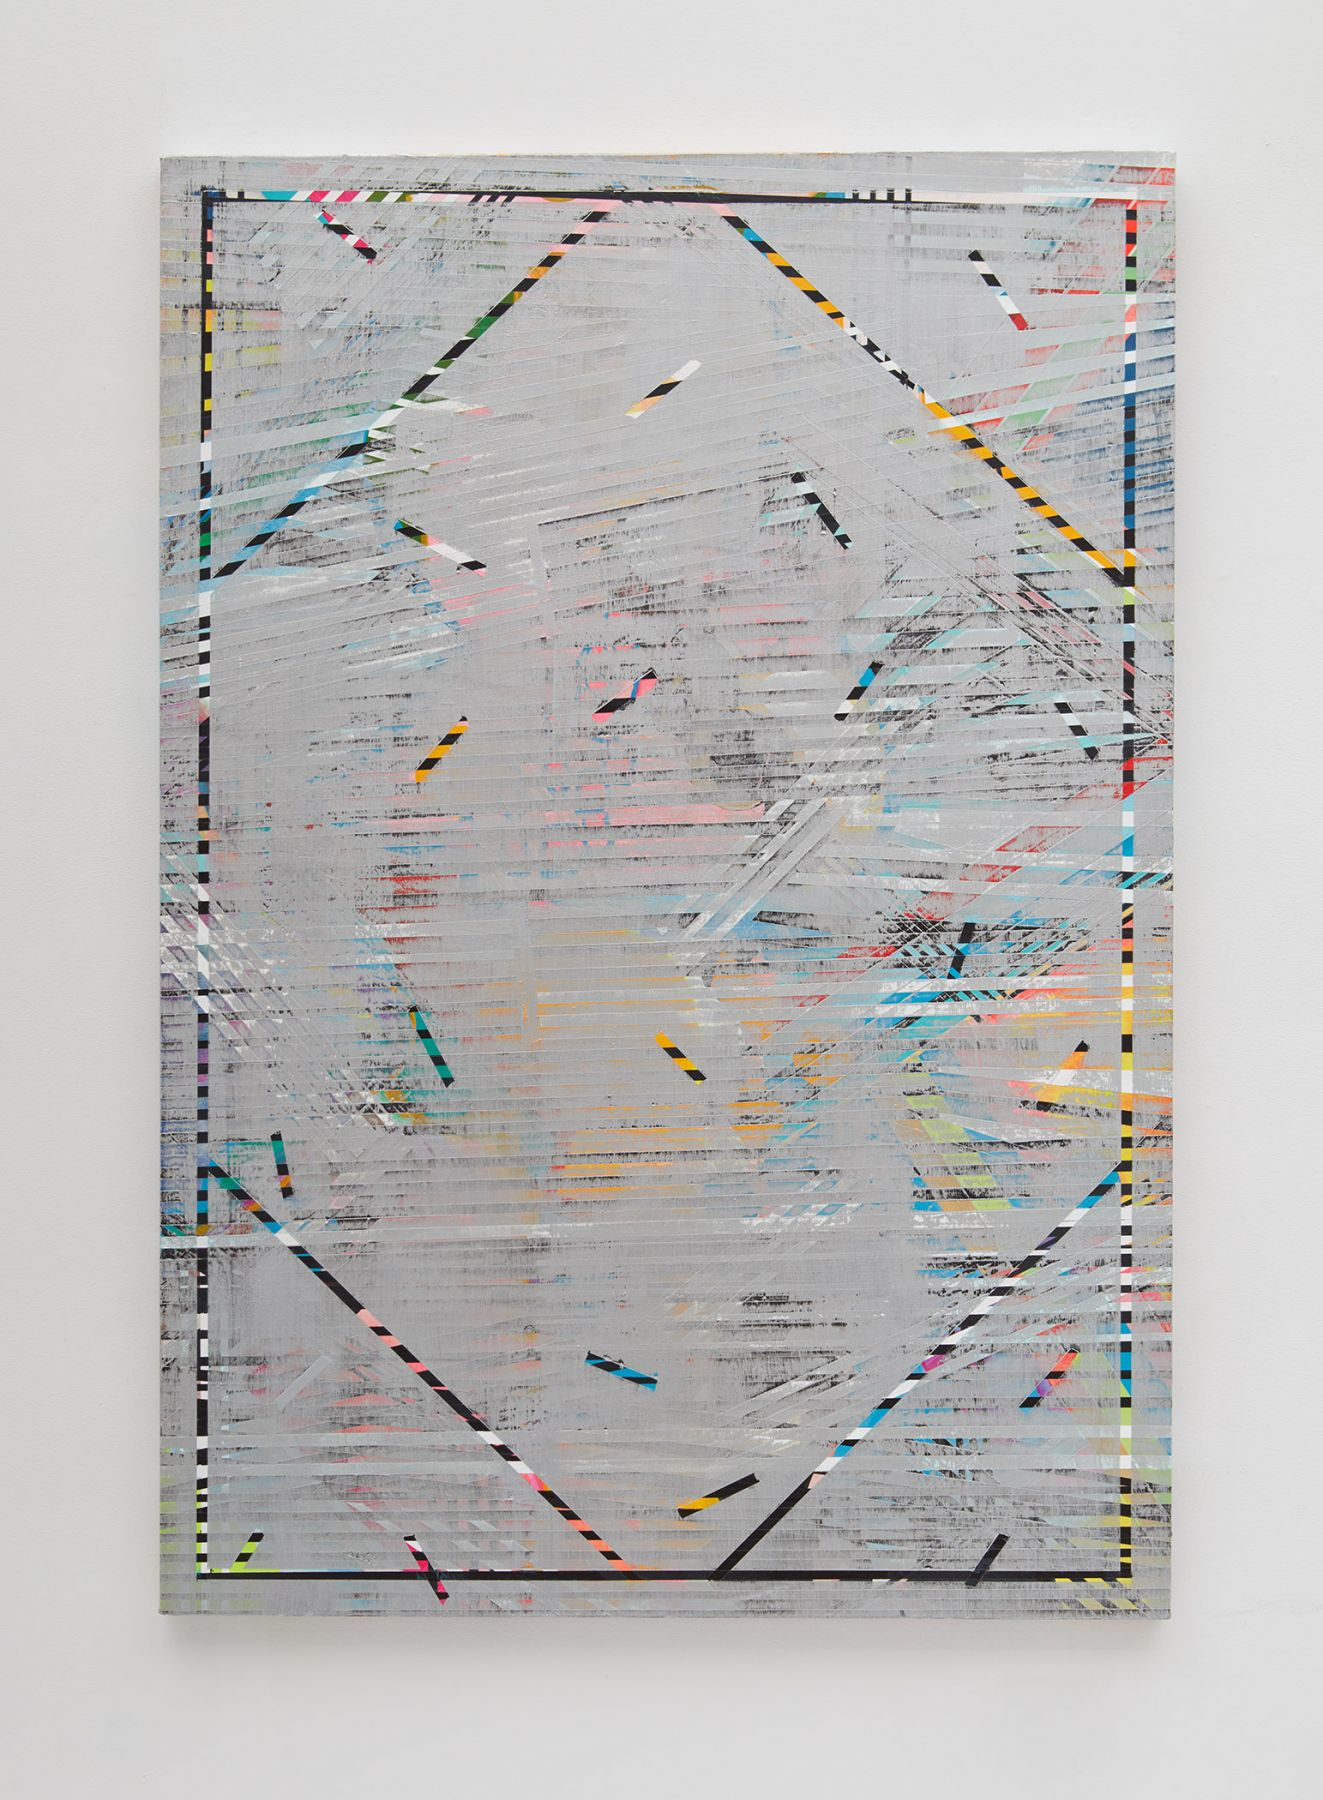 conceptual painting by Julia Dault in a New York City gallery